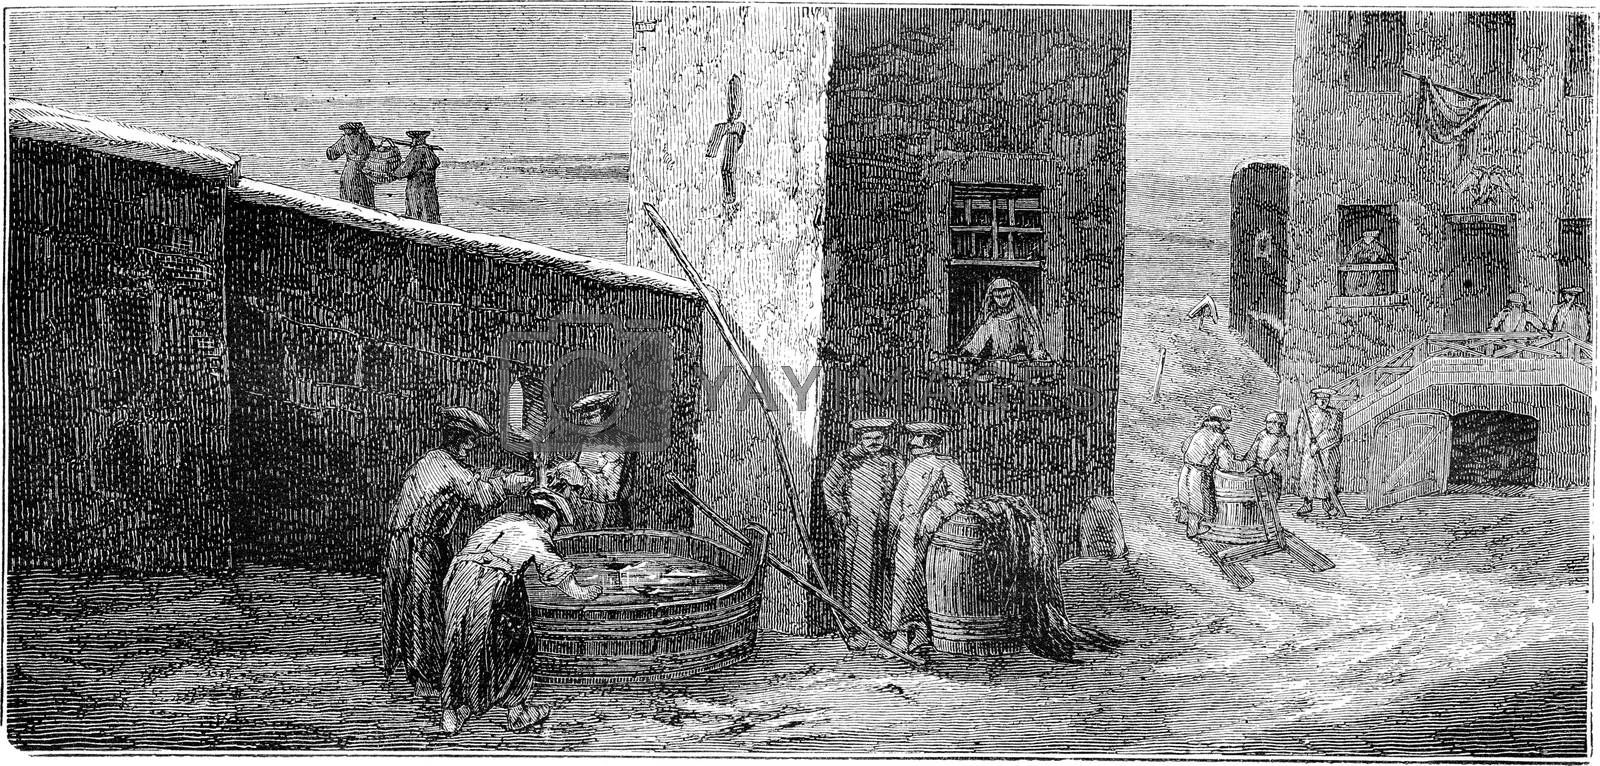 Soldiers stationed at the well (Riga), vintage engraved illustration. Le Tour du Monde, Travel Journal, (1865).